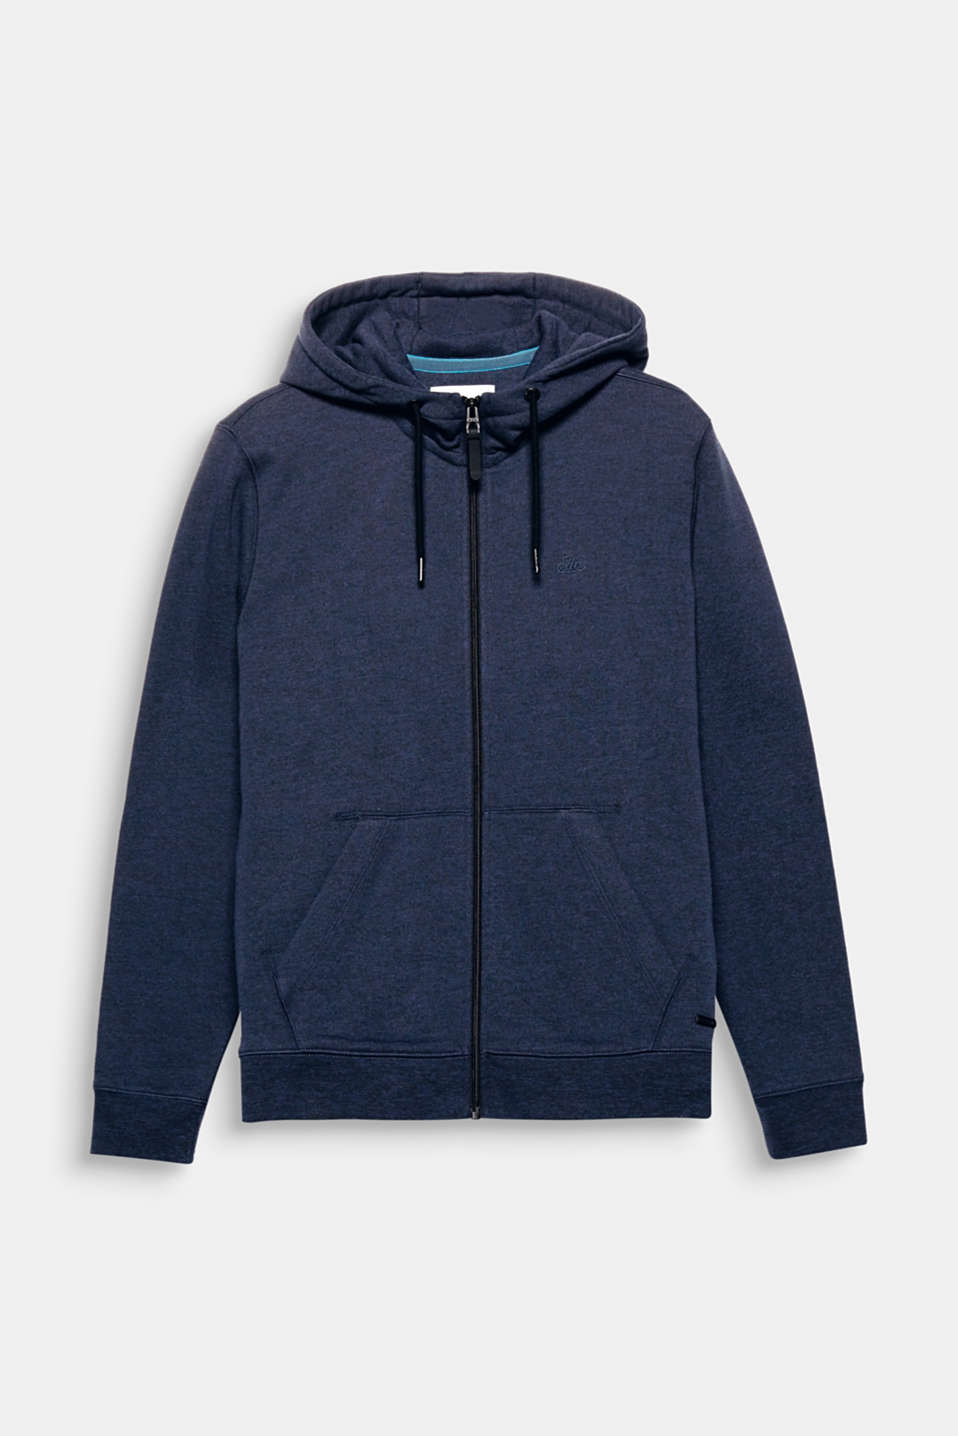 The soft melange sweatshirt fabric and hood with drawstring ties make this hoodie a favourite.